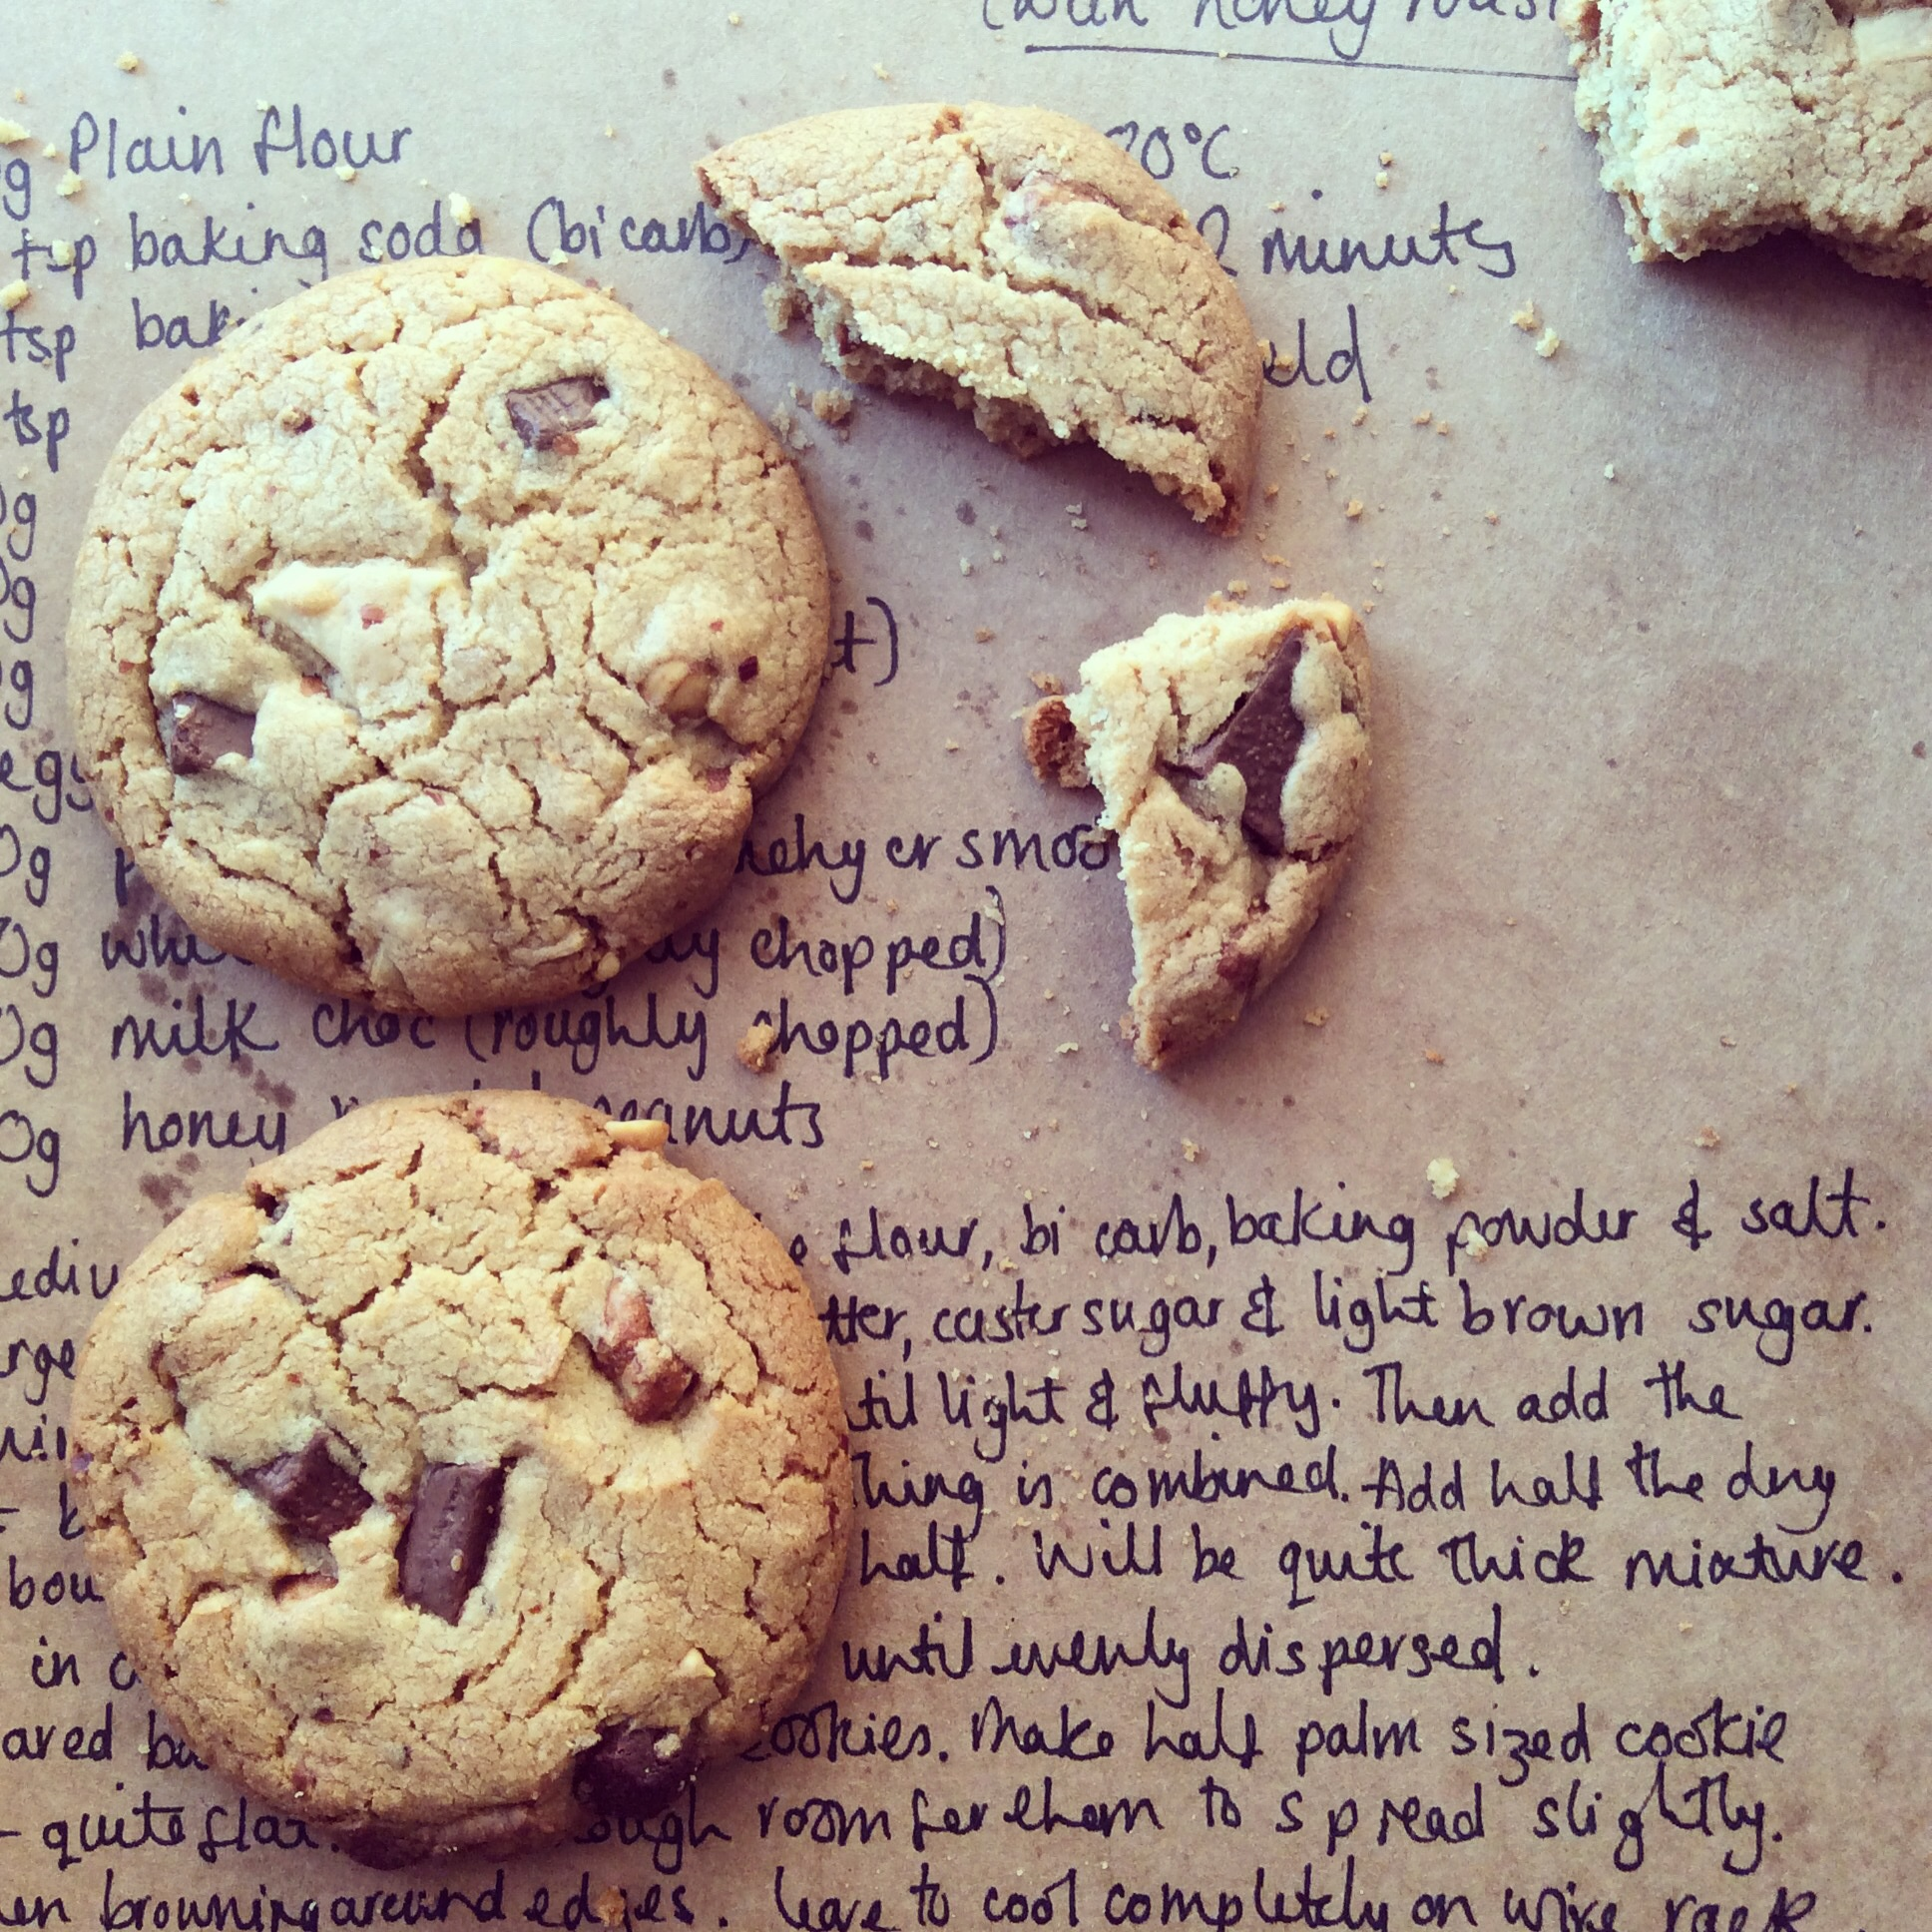 Peanut butter choc chip nut cookies